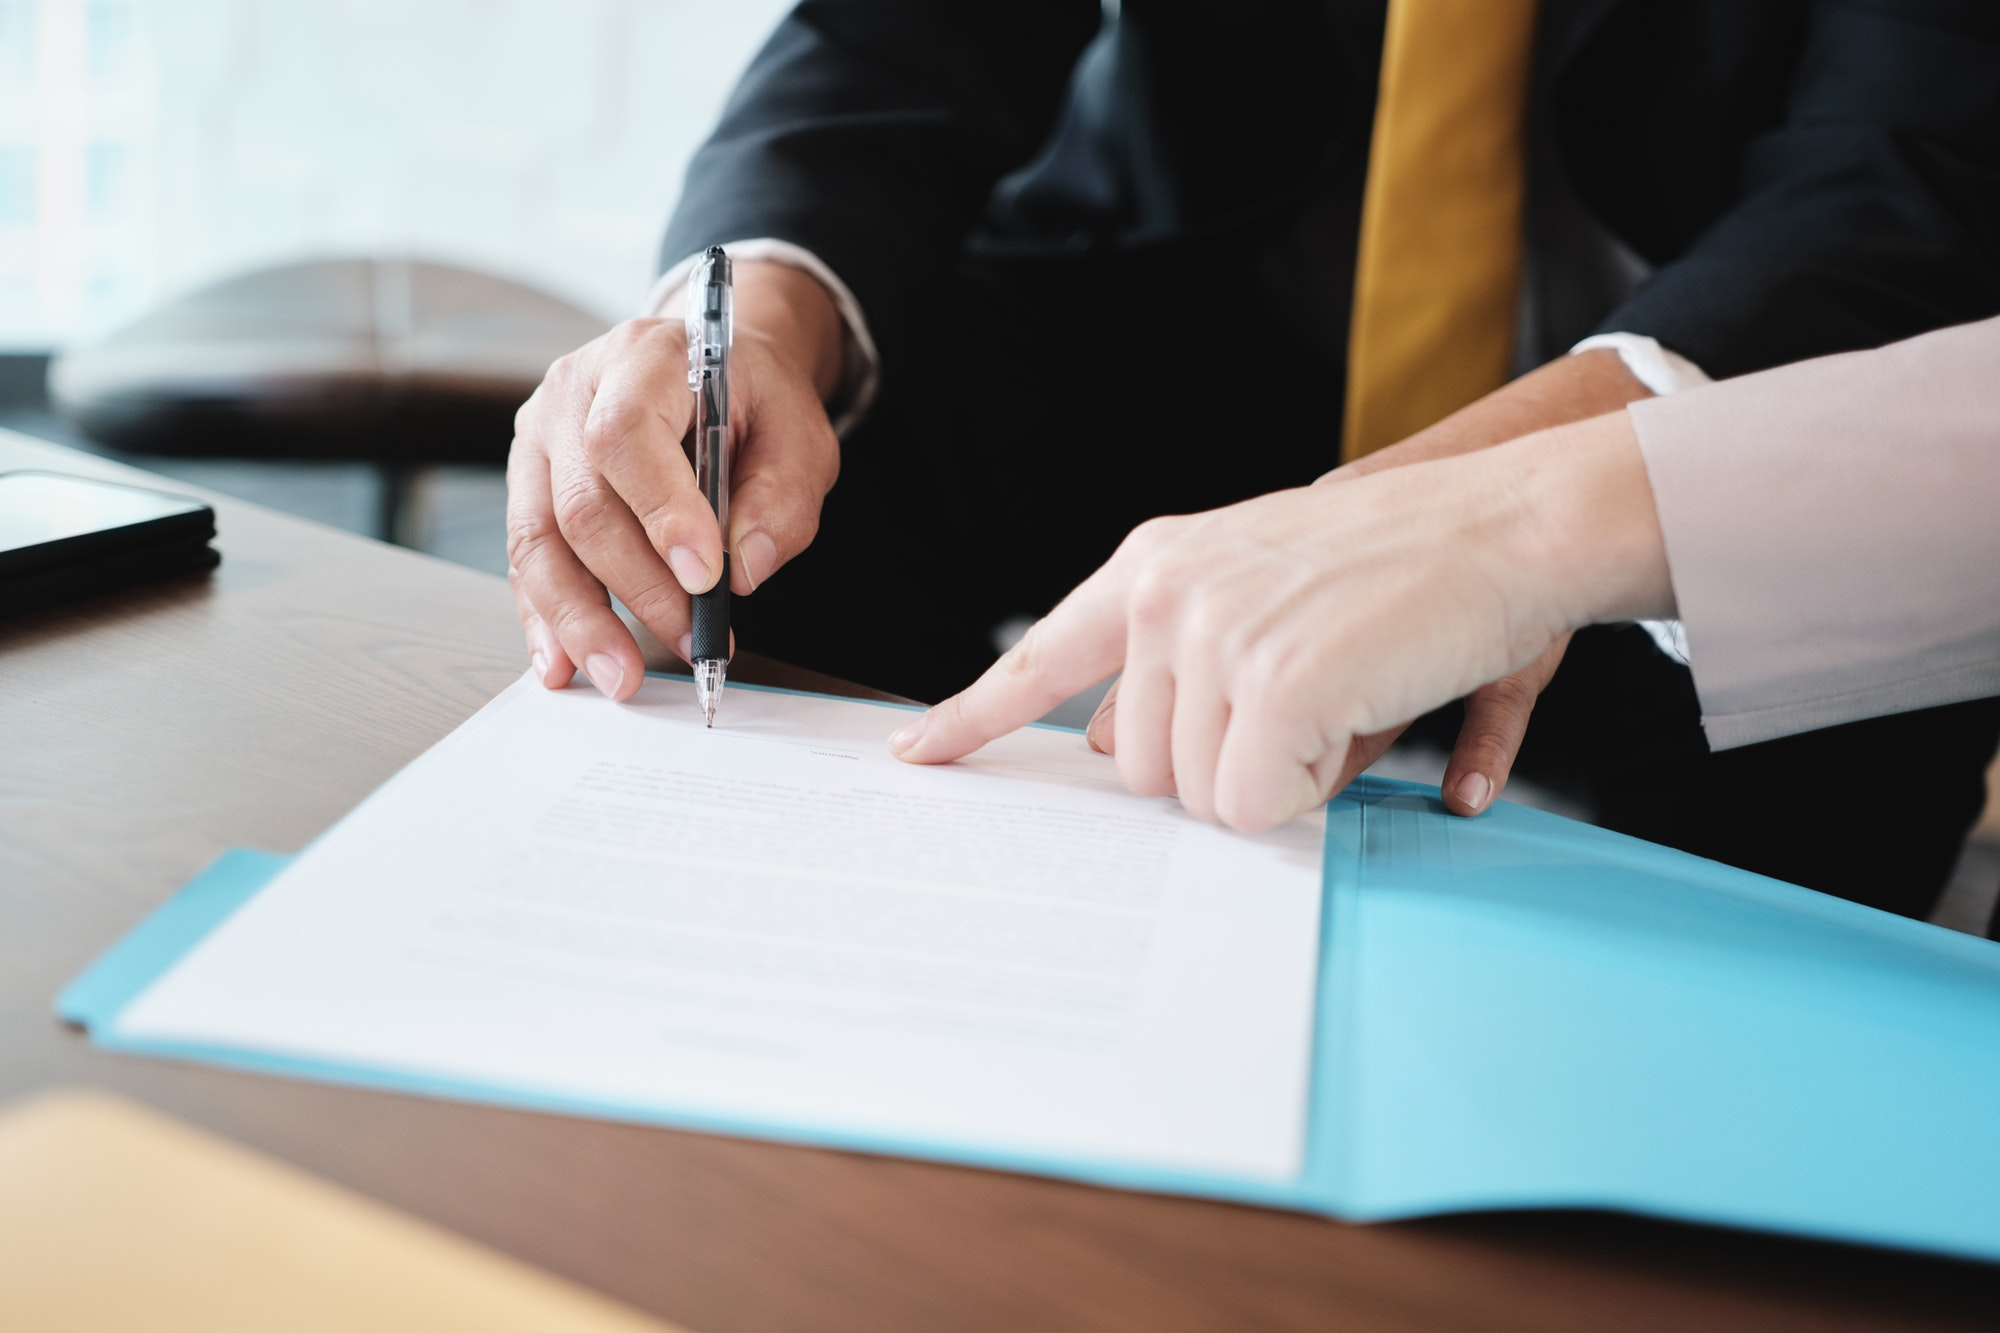 Asian Manager Signing Agreement For Health Insurance With Business Woman